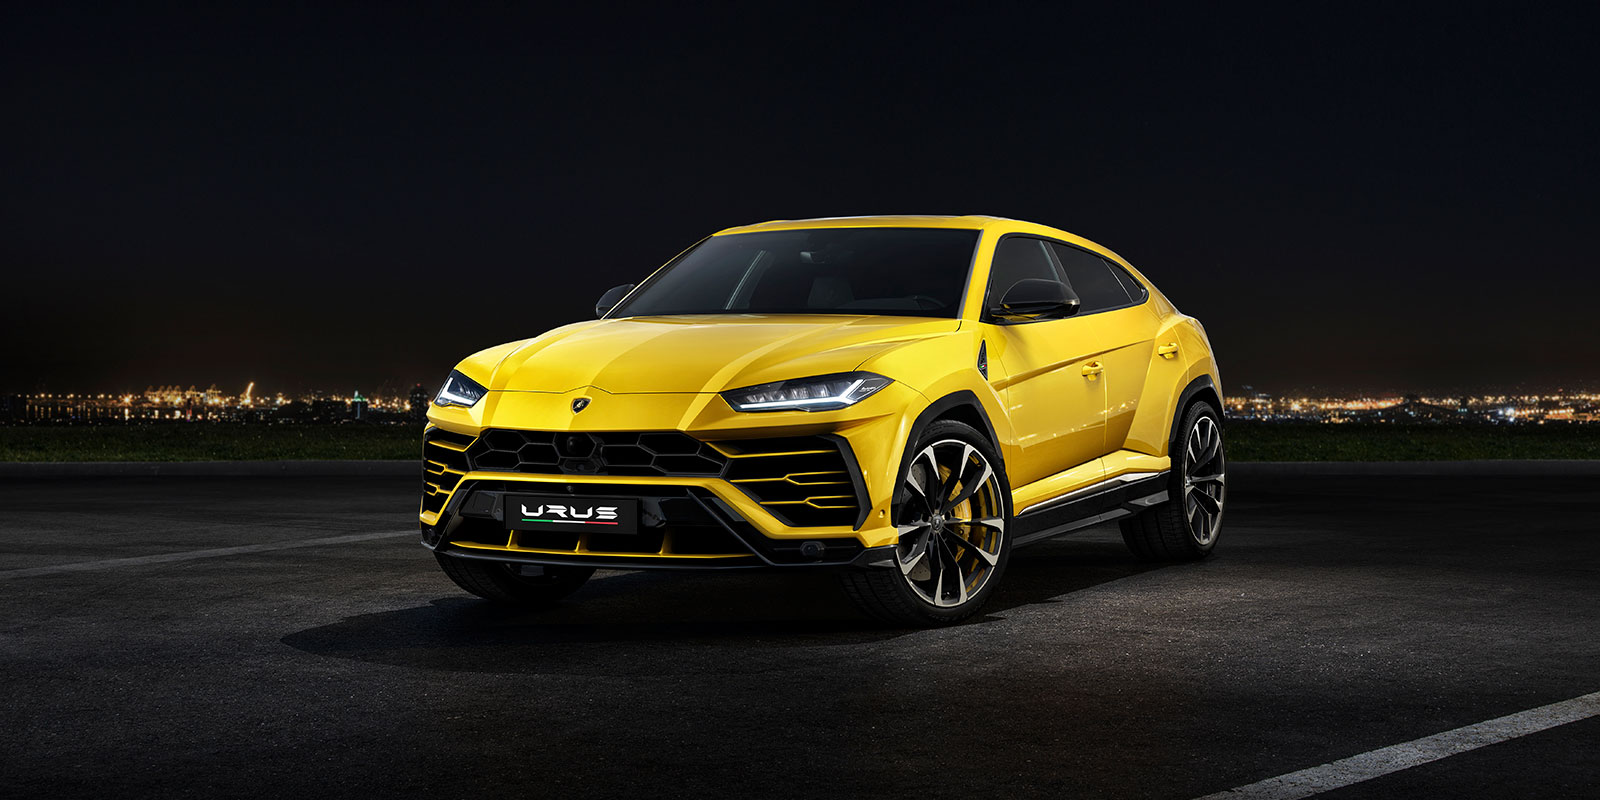 Lamborghini Urus - The World's First Super Sport Utility Vehicle image 6